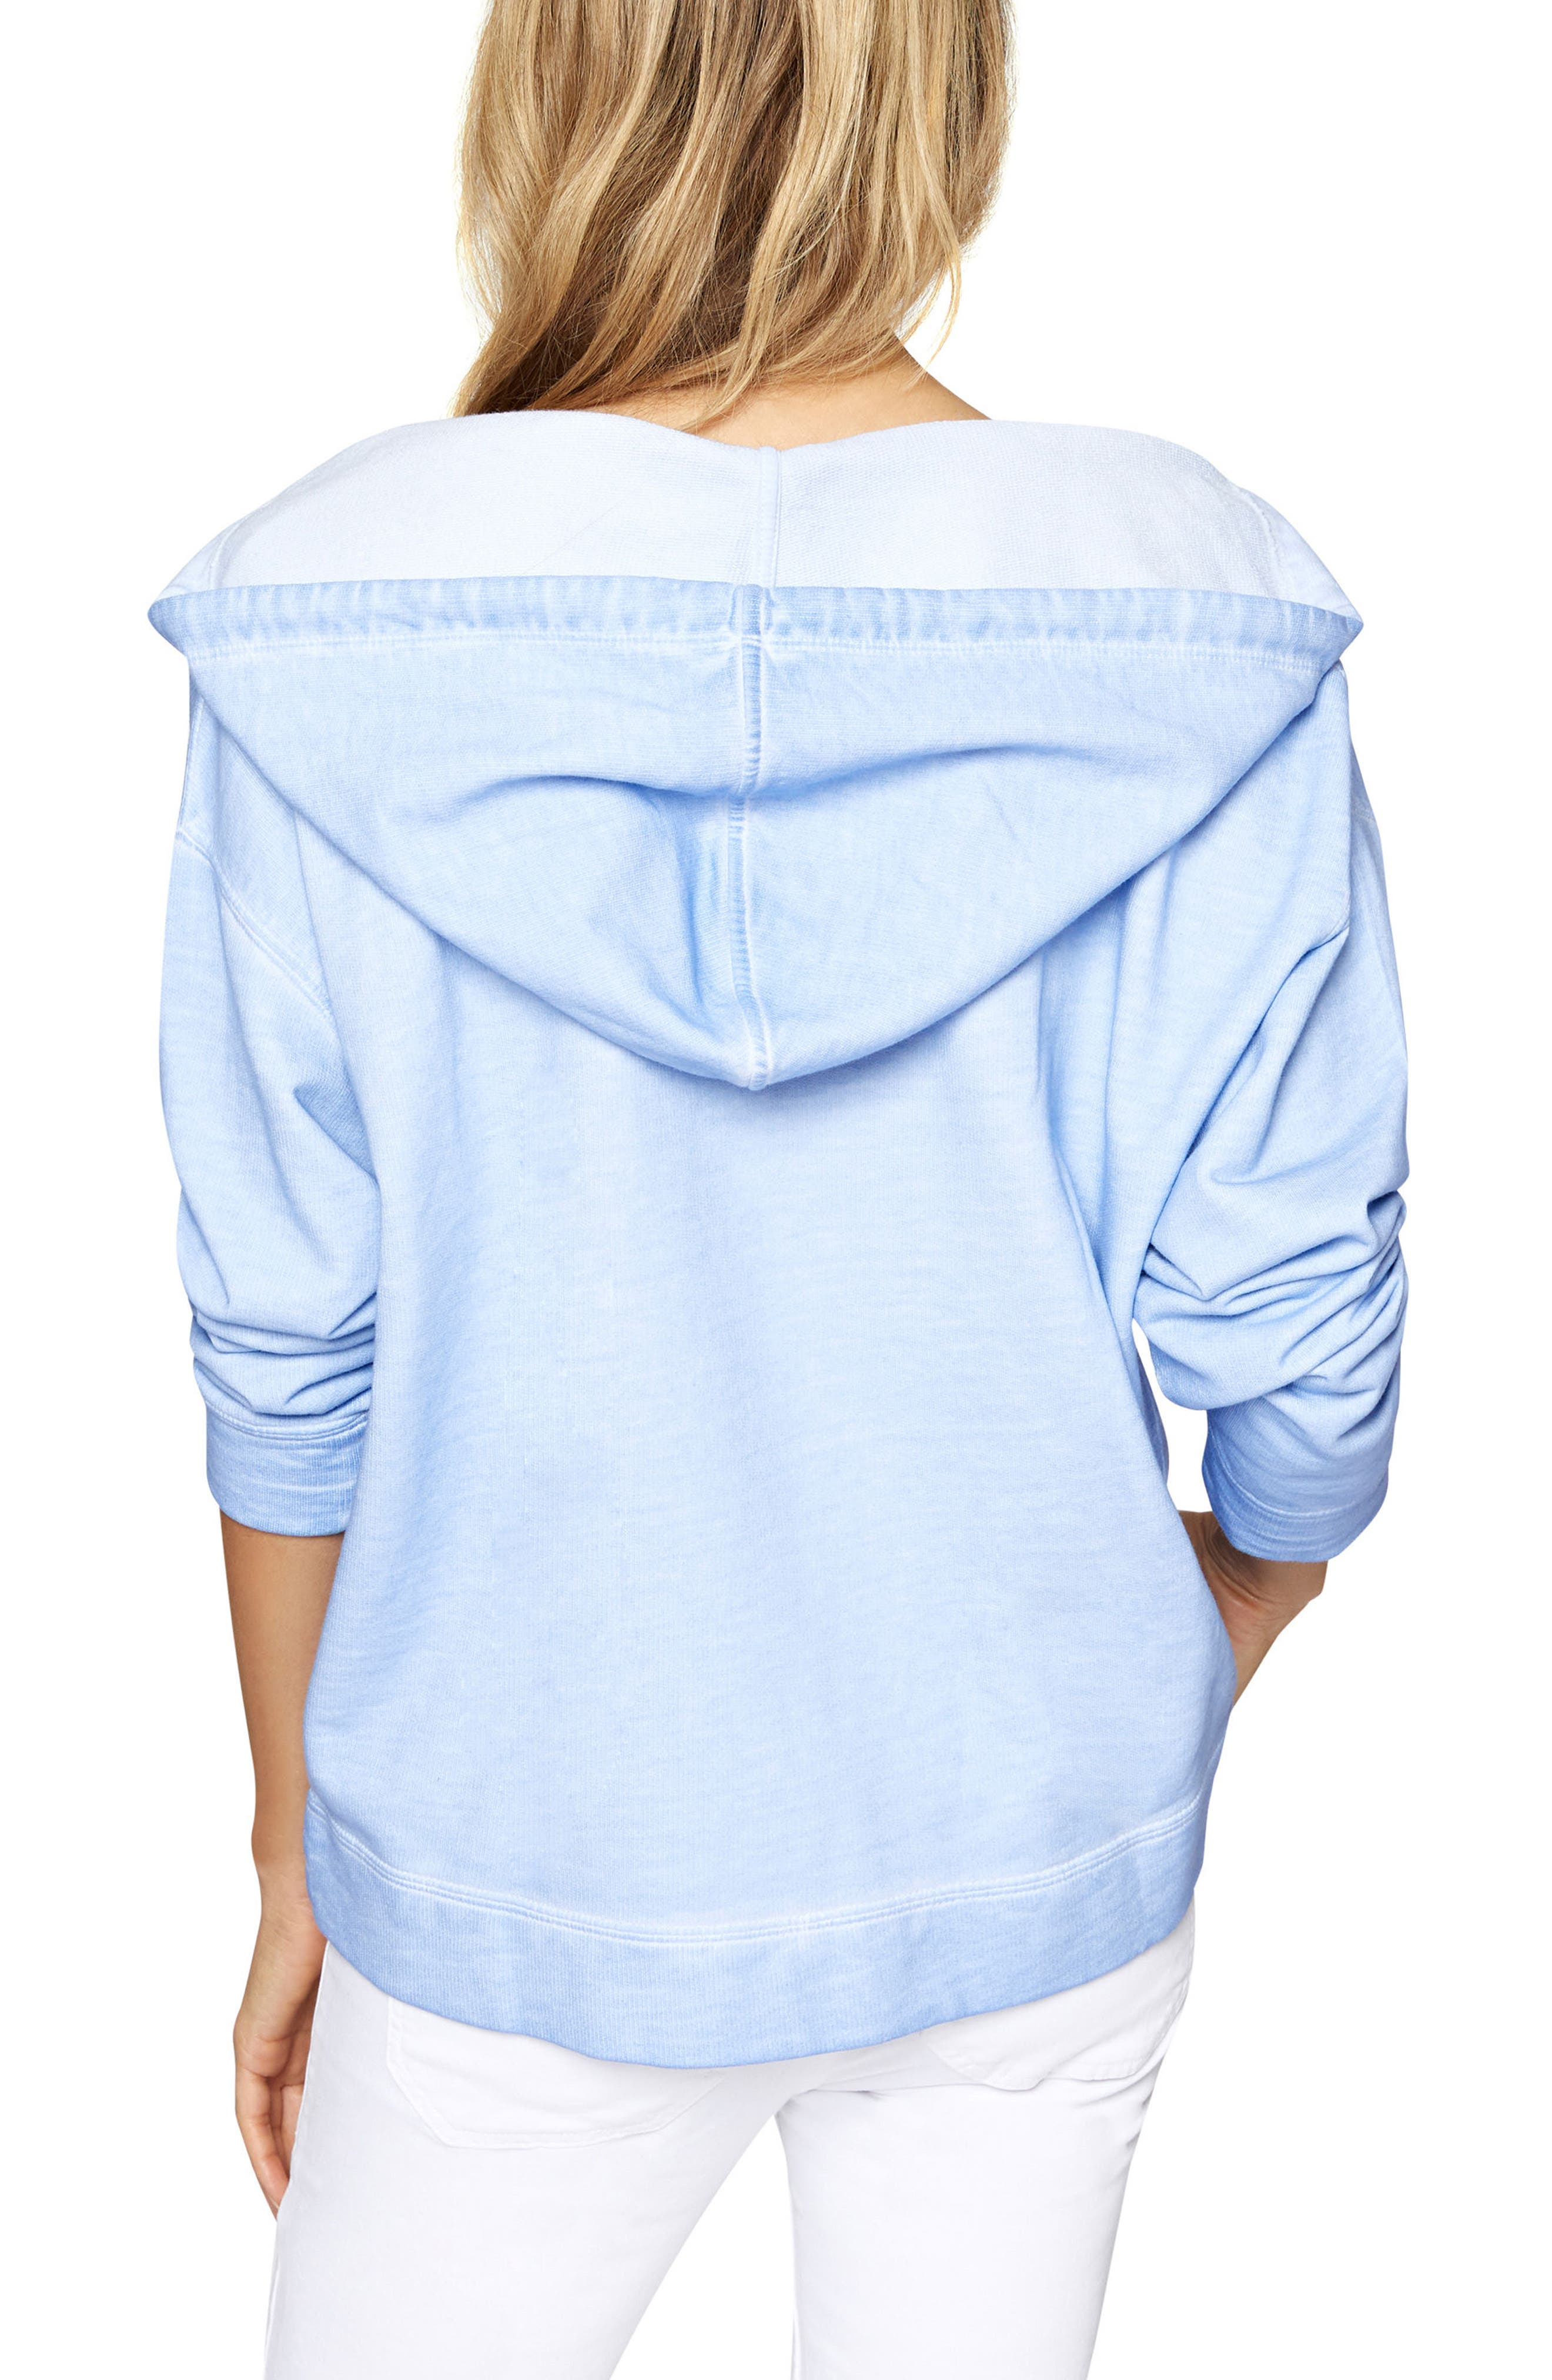 Shiloh Hoodie,                             Alternate thumbnail 2, color,                             Icy Blue